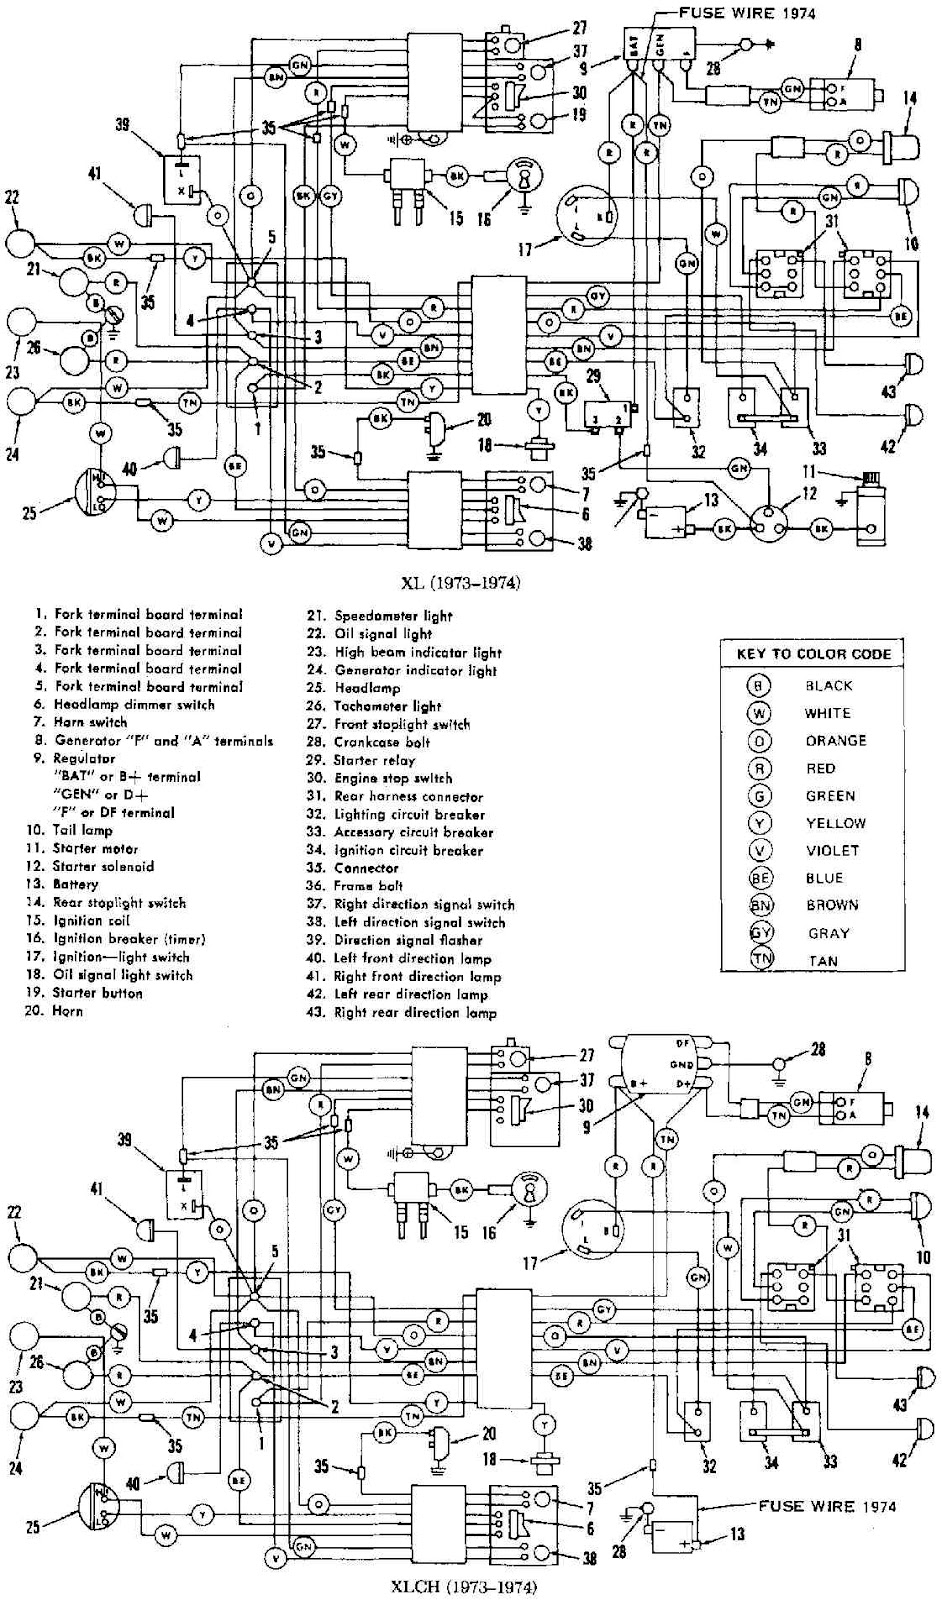 harley tach repair, harley radio wiring, harley road king tach wiring, 98 ultra classic wiring diagram, harley stereo wiring schematic 2003, sportster tach wiring diagram, 2010 street glide wiring diagram, harley wiring harness diagram, harley speedometer wiring diagram, harley wiring diagram for dummies, harley davidson tachometer exploded view, harley davidson tachometer installation, stock harley tach wiring diagram, road glide wiring diagram, on harley davidson motorcycle tachometer wiring diagram